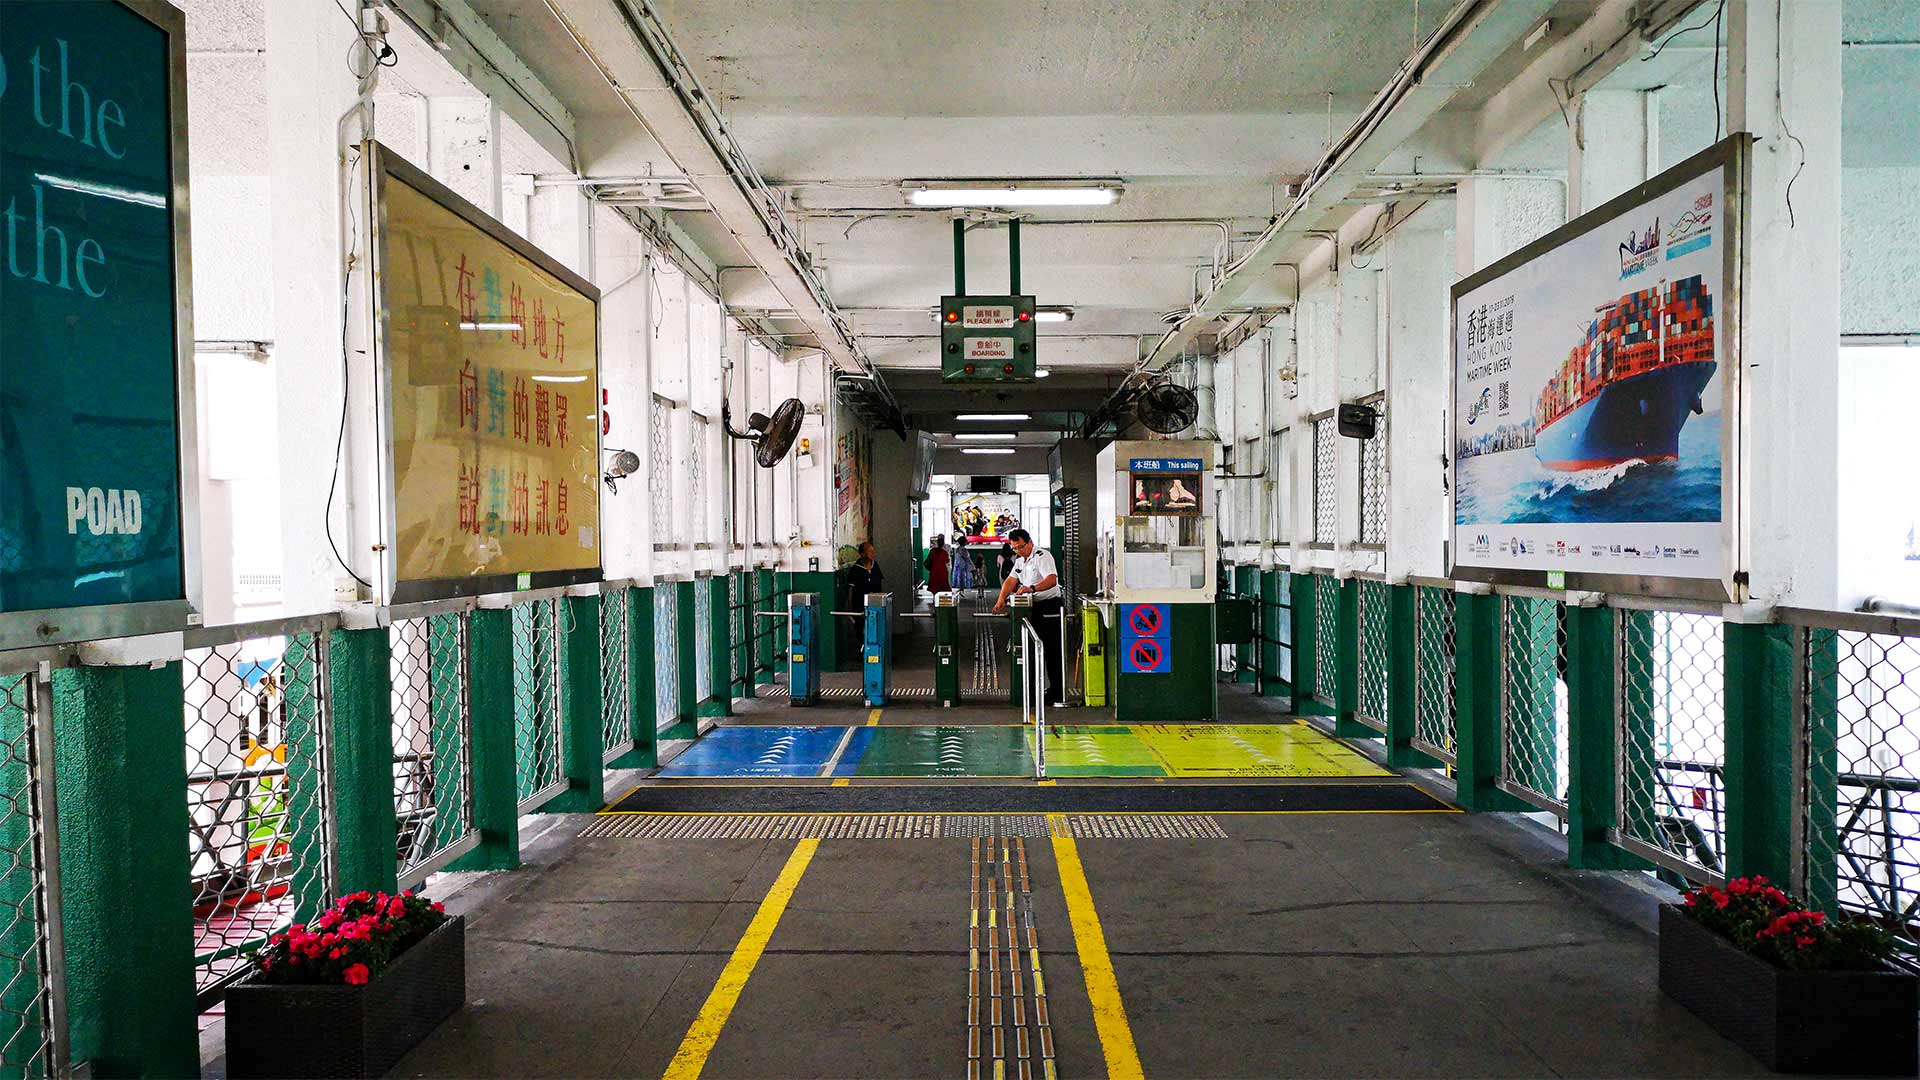 Entrance area of Star Ferry Pier in Kowloon, Hong Kong